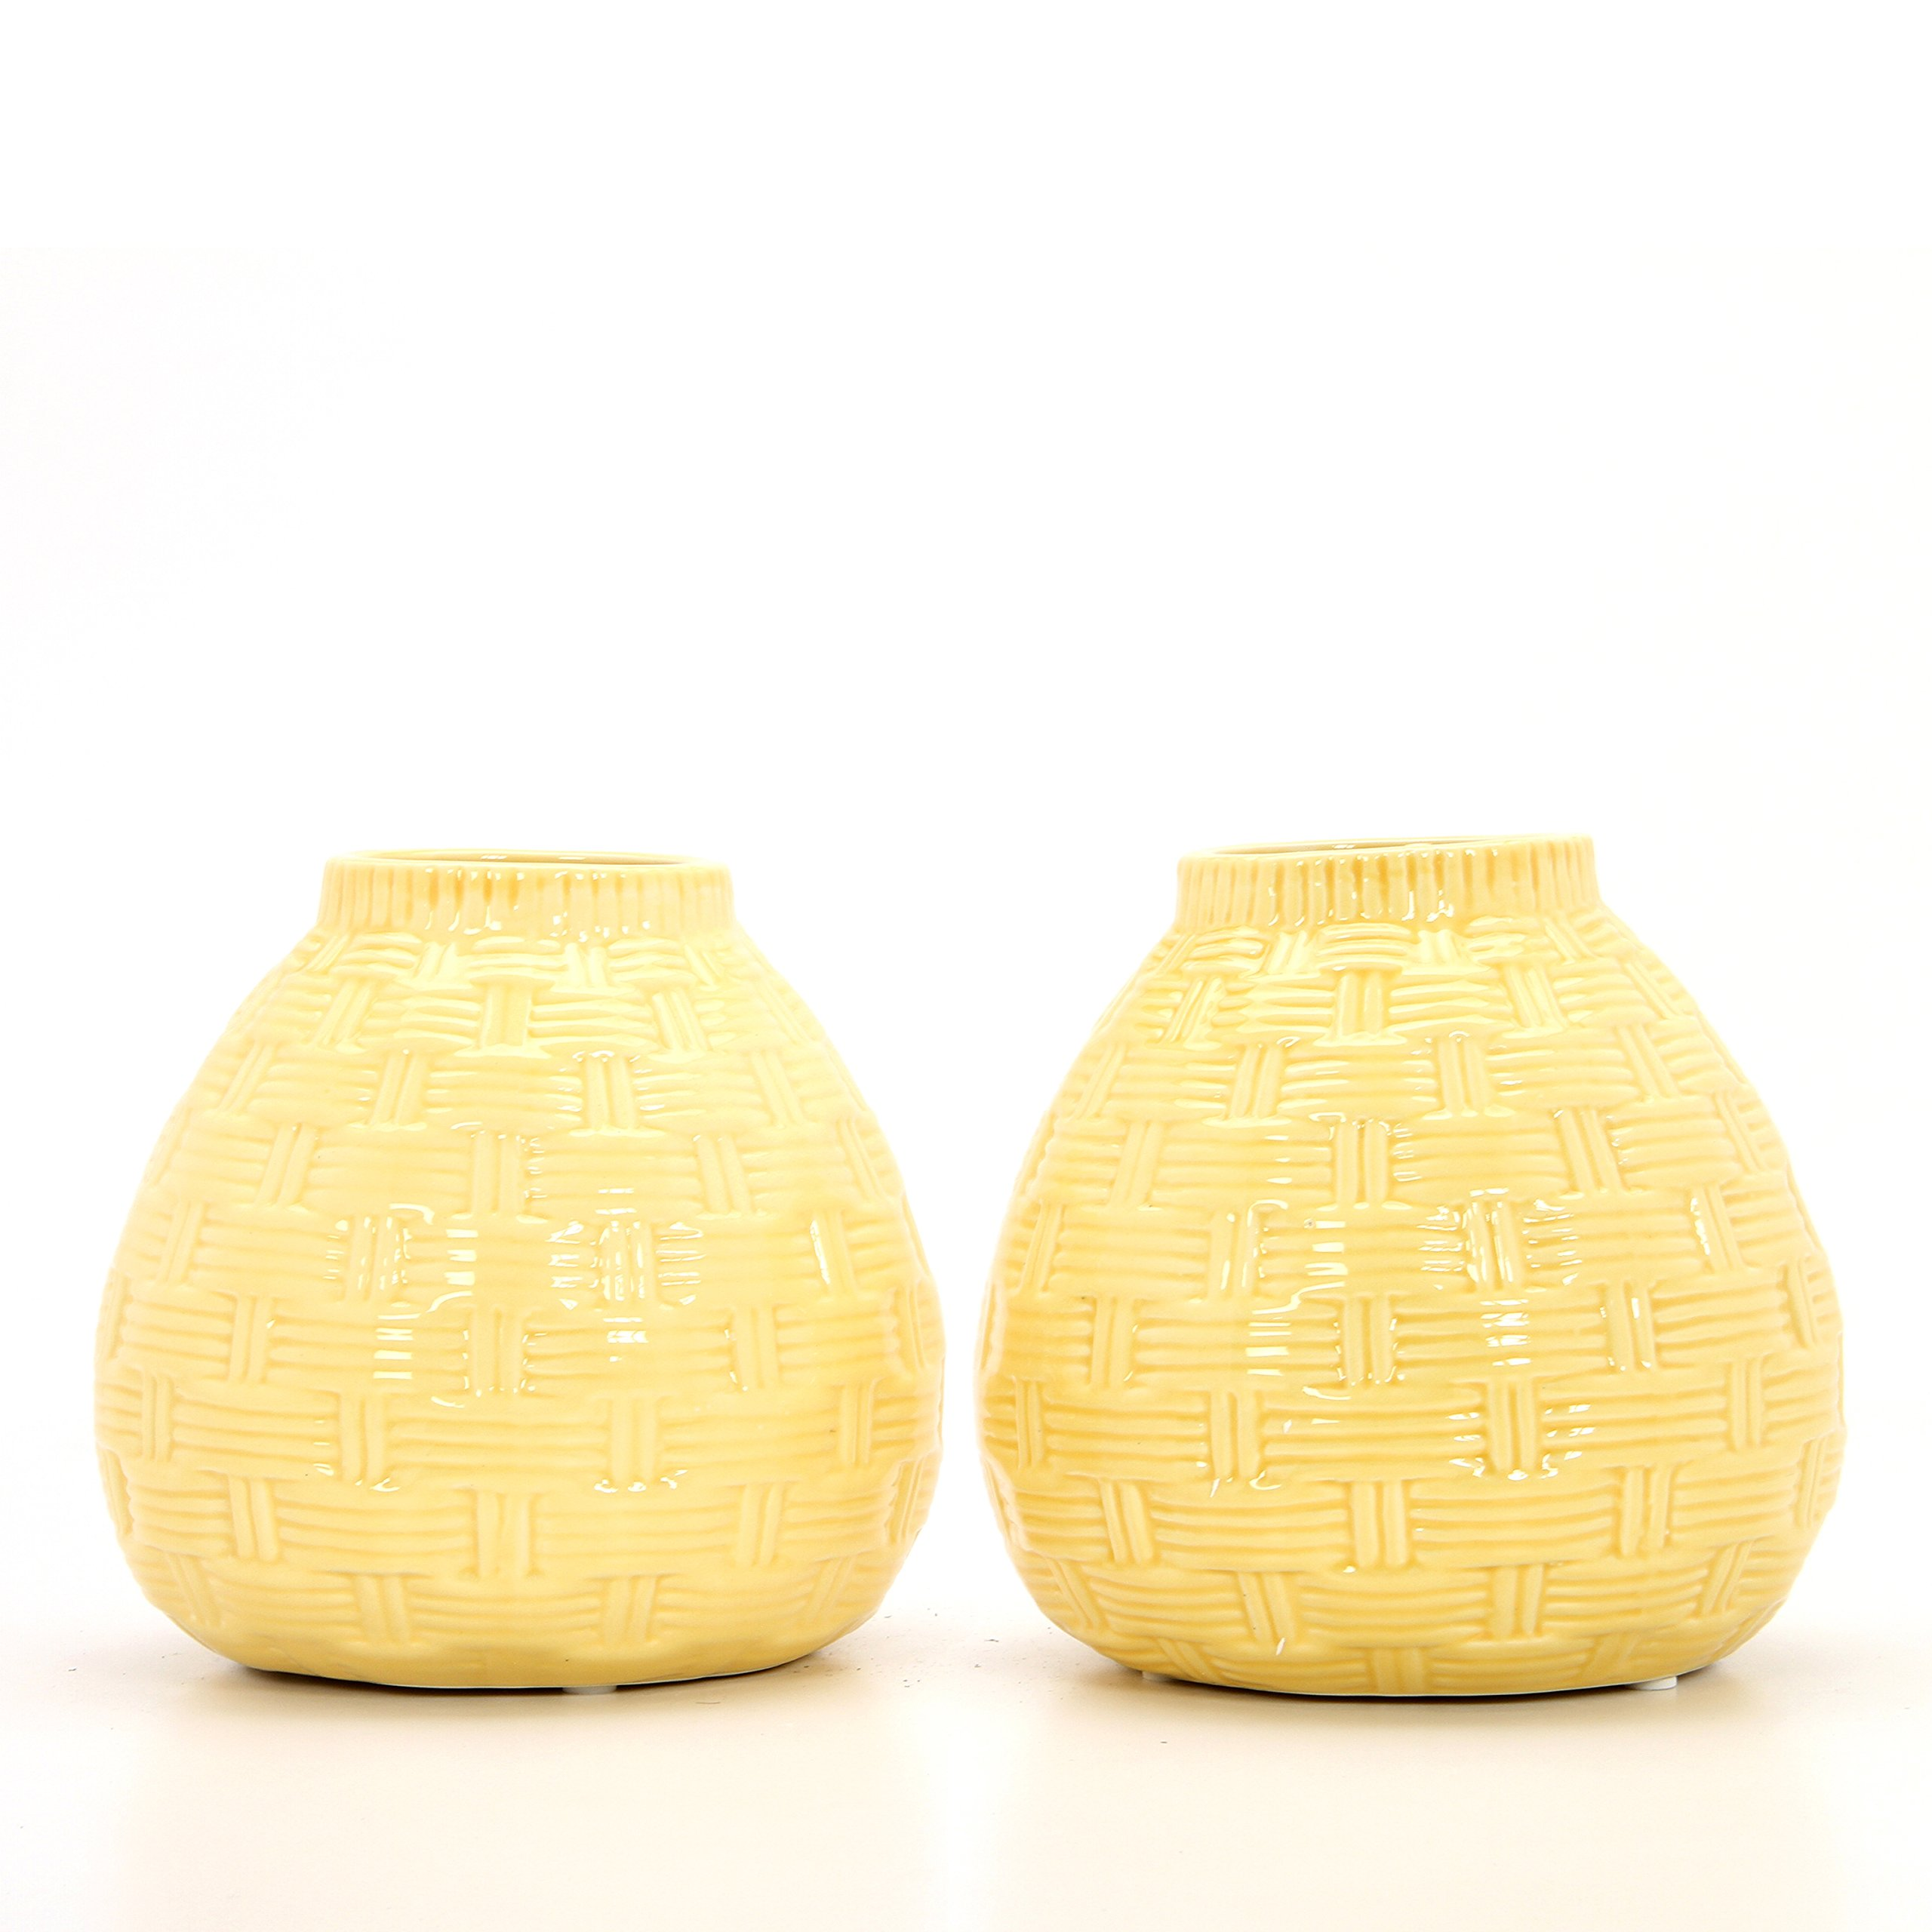 Hosley Set of 2 Ceramic Yellow Vases - 6.5'' High. Ideal Gift for Home, Weddings, Party, Spa, Meditation, Home Office, Reiki, Meditation O9